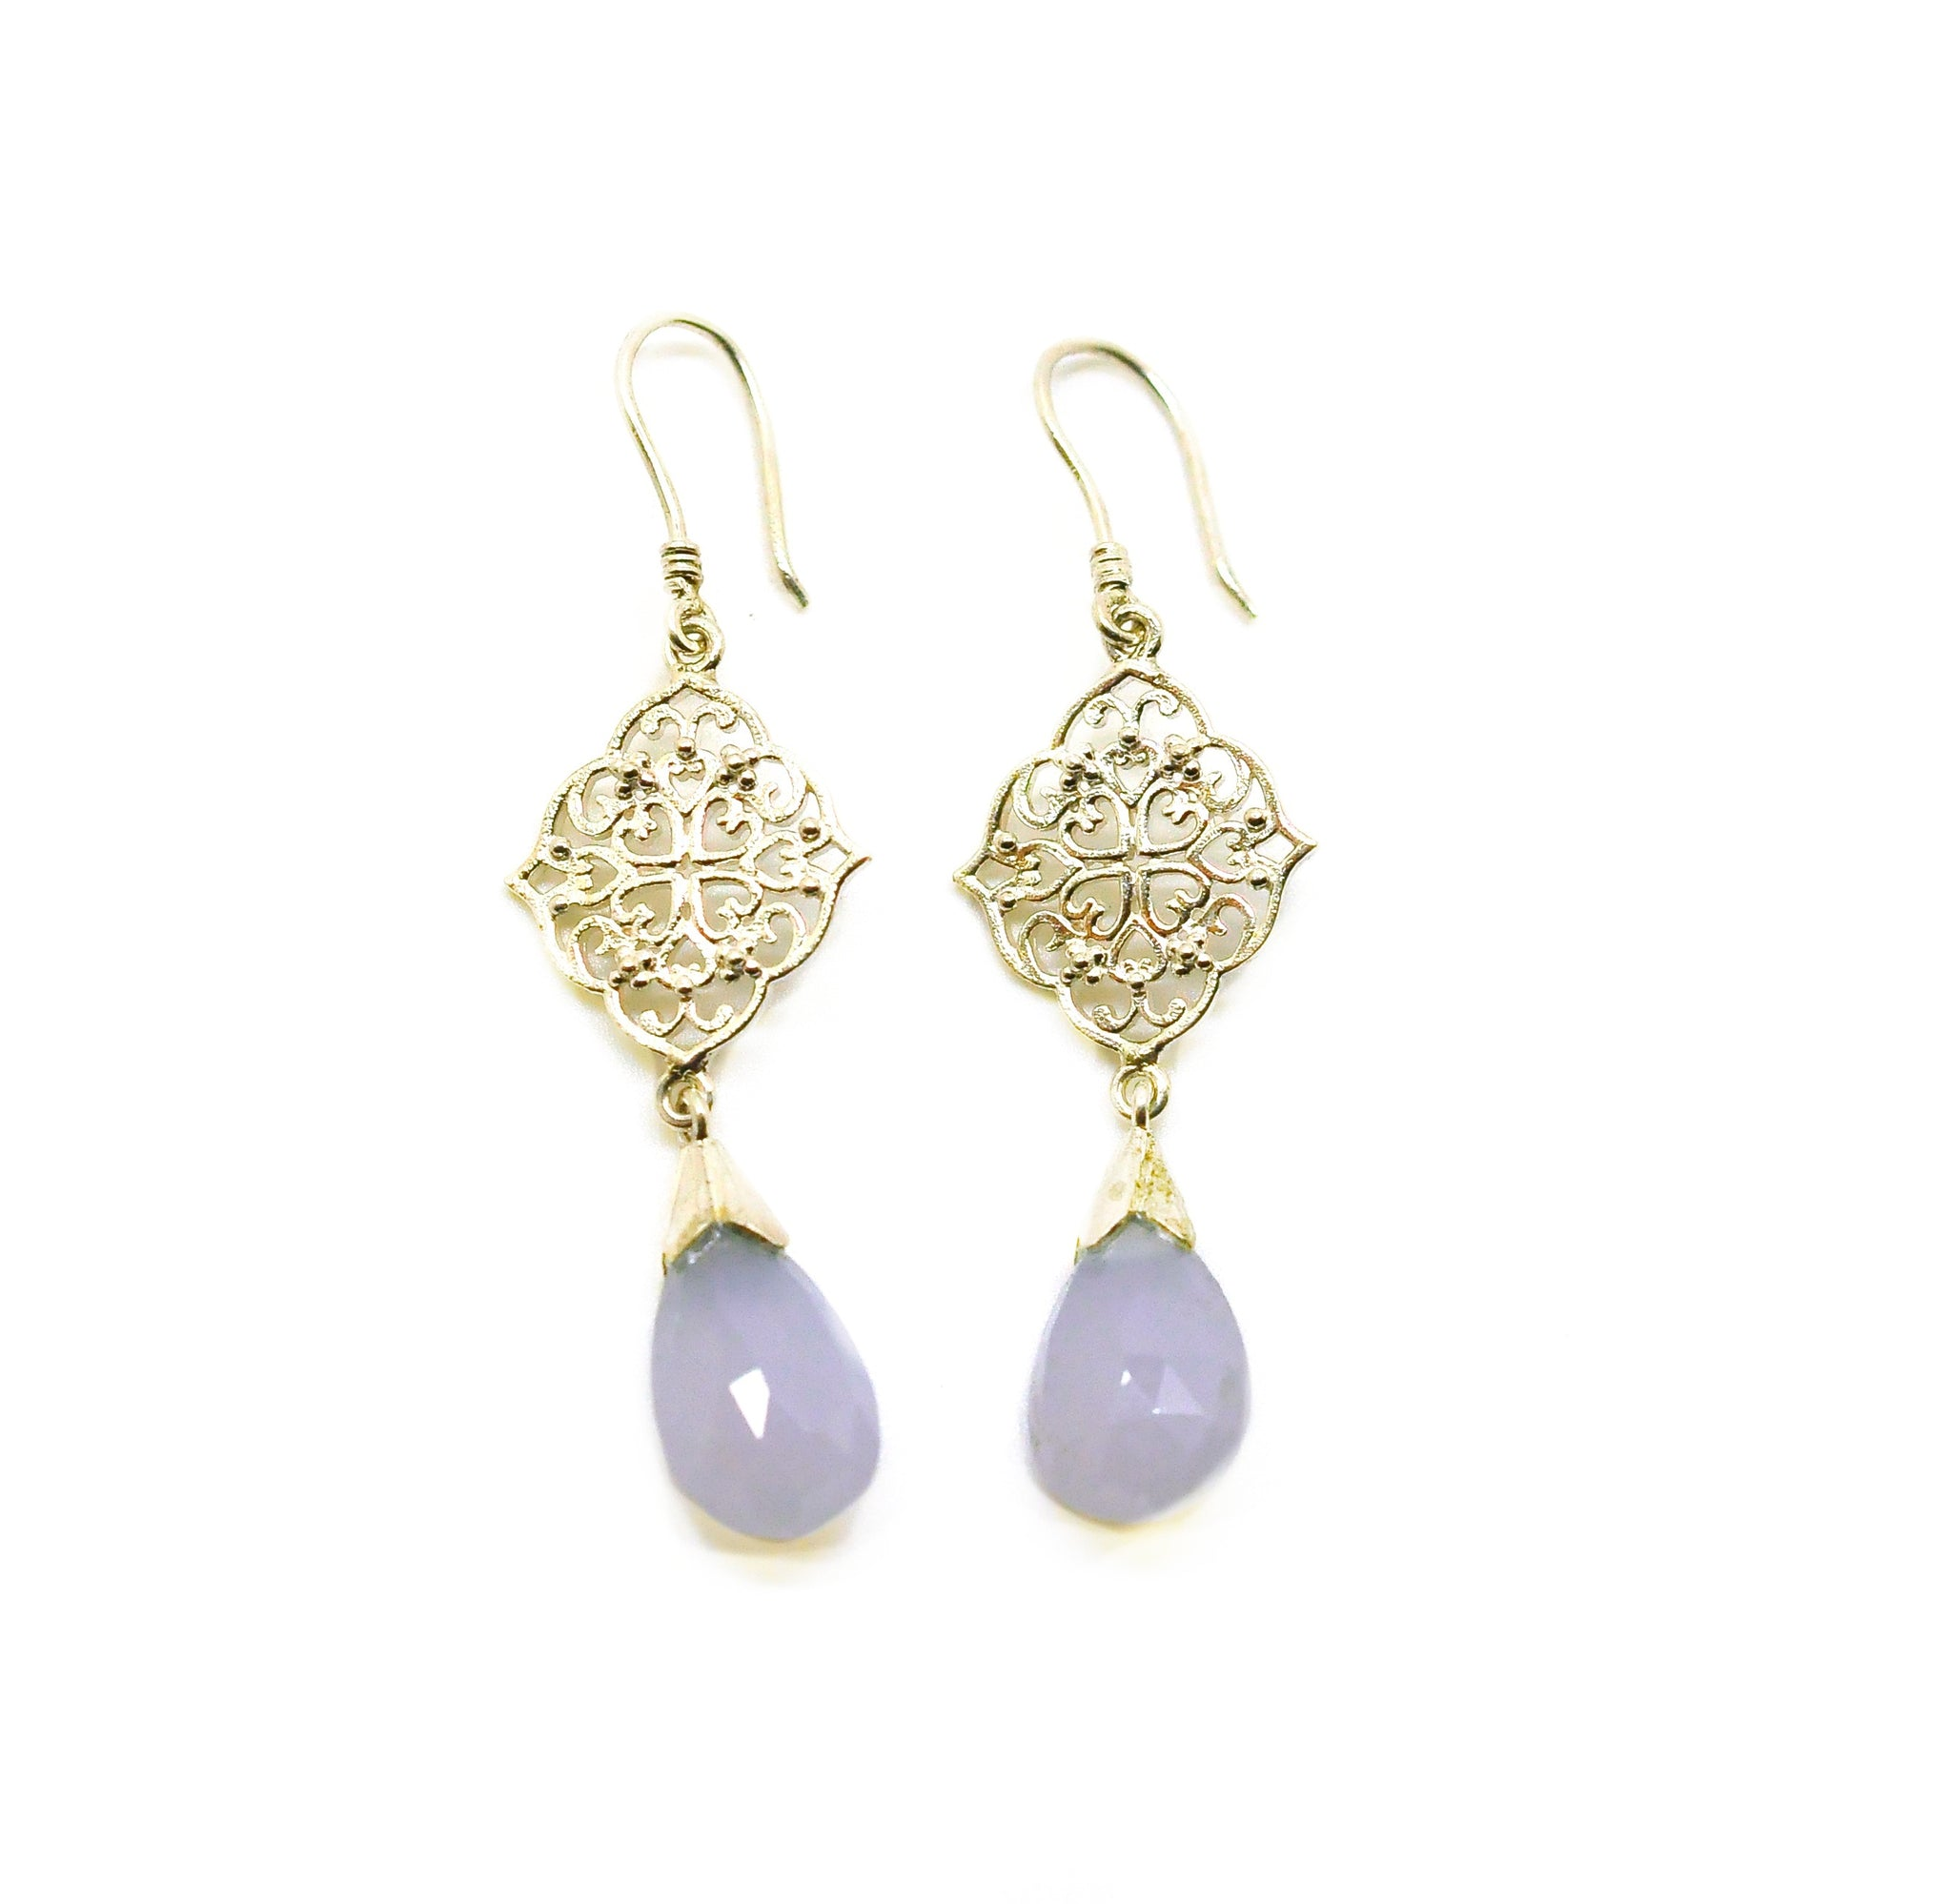 SOLD - NEW Victorian filigree chalcedony